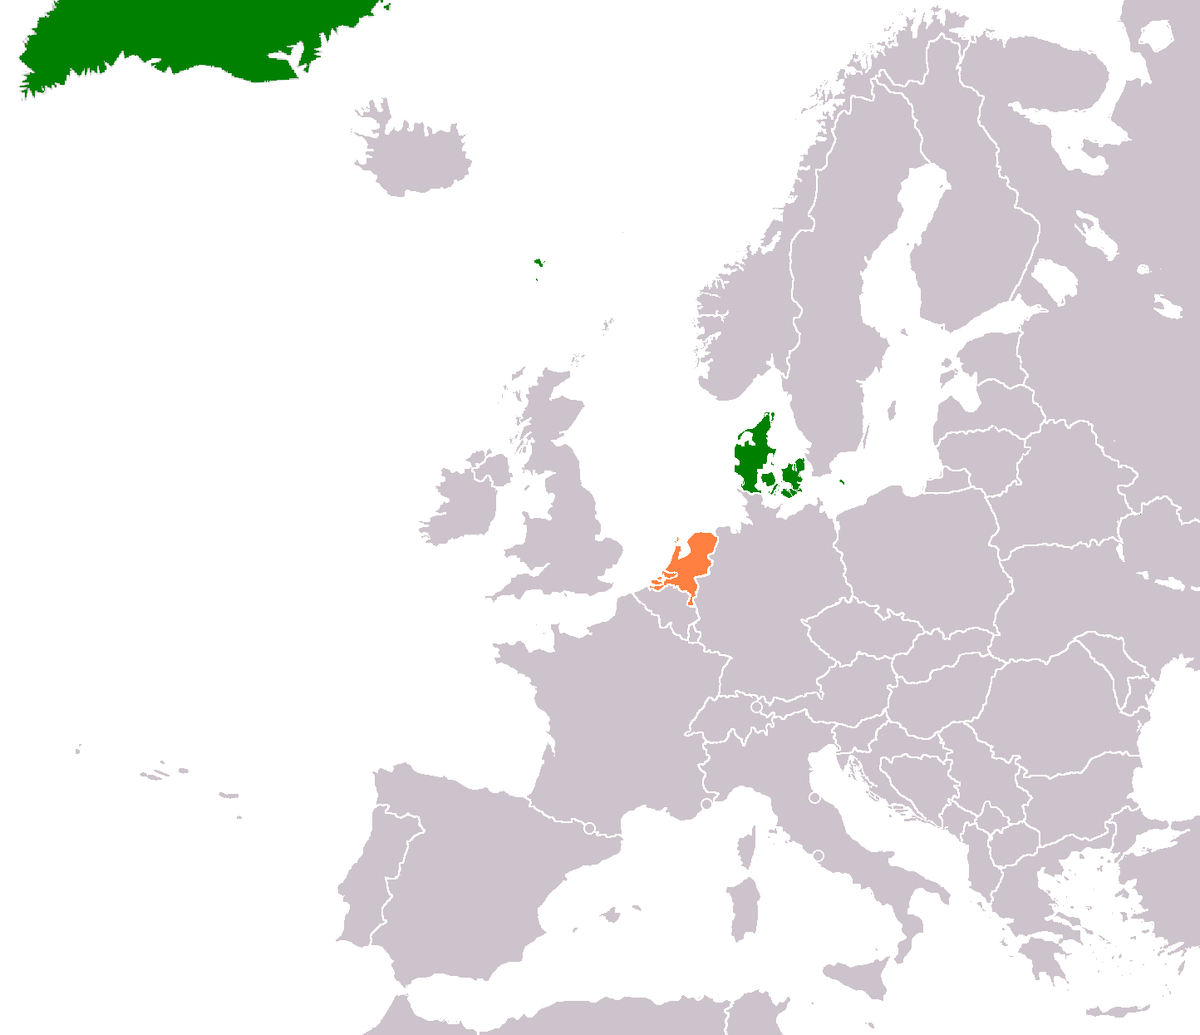 DenmarkNetherlands relations Wikipedia